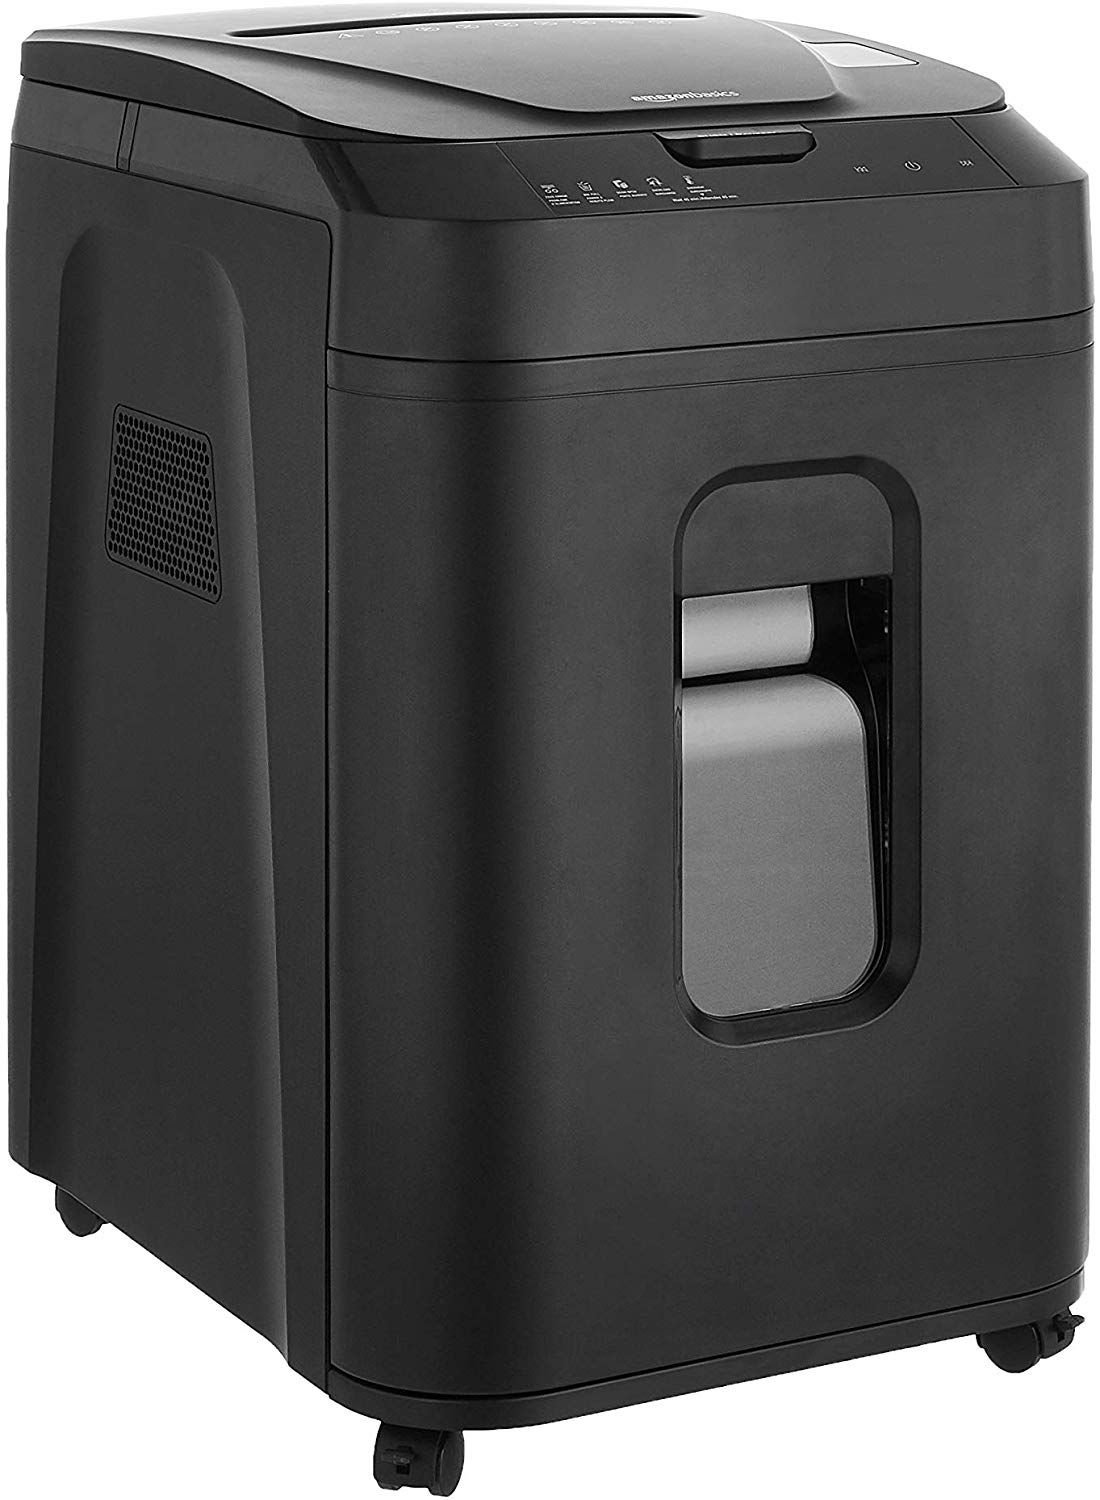 Best paper shredder in different features categories for